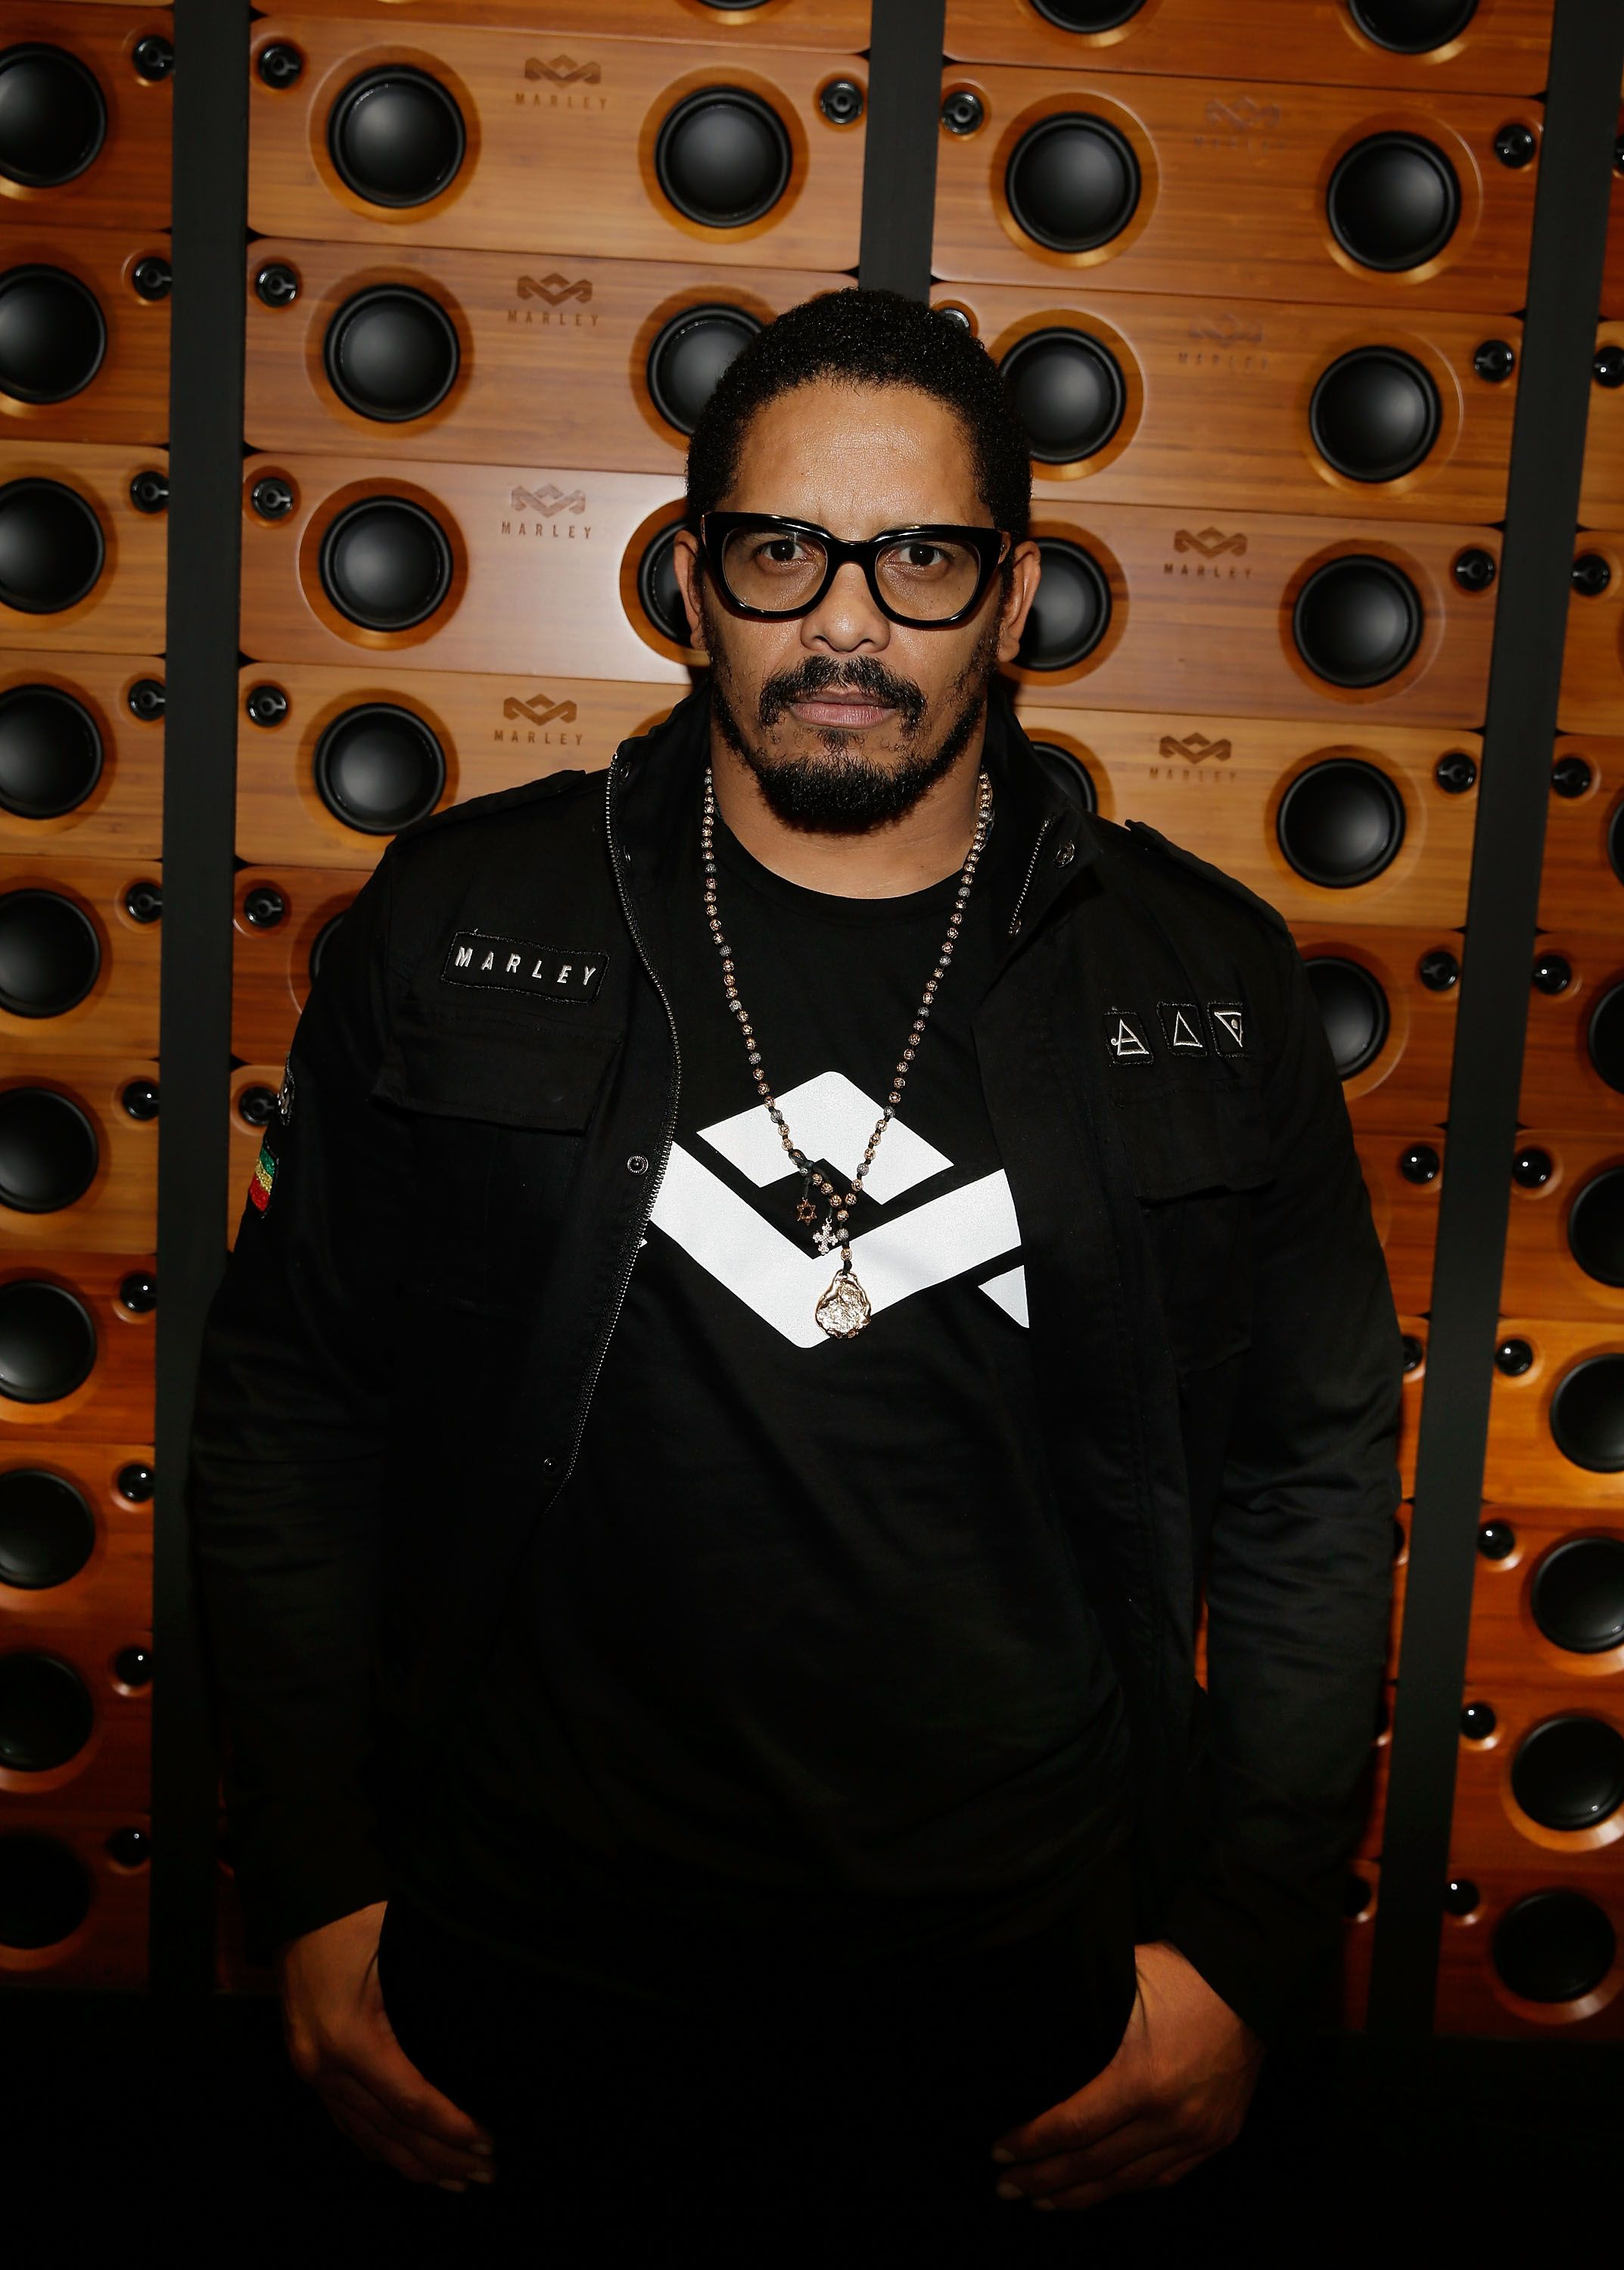 Rohan Marley at the House of Marley booth during the International Consumer Electronics Show at the Las Vegas Convention Center on January 6, 2015 in Las Vegas, Nevada   Photo: Getty Images